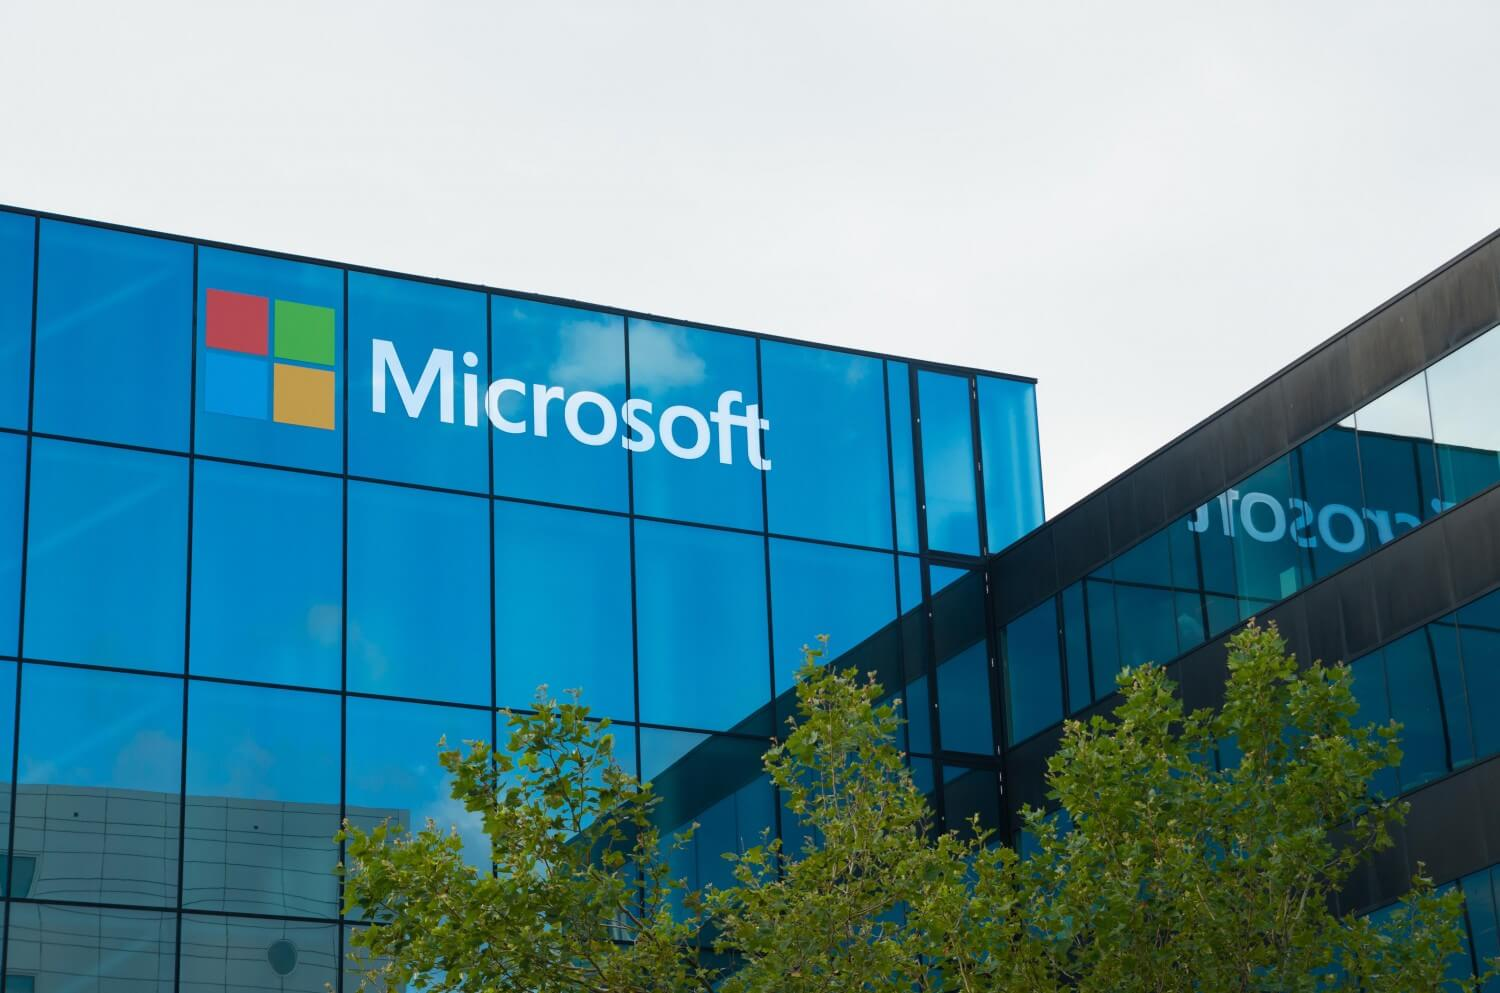 Ecobank Group Partners with Microsoft to Upskill Africa's SMEs to Succeed in a Digital Economy - Newslibre